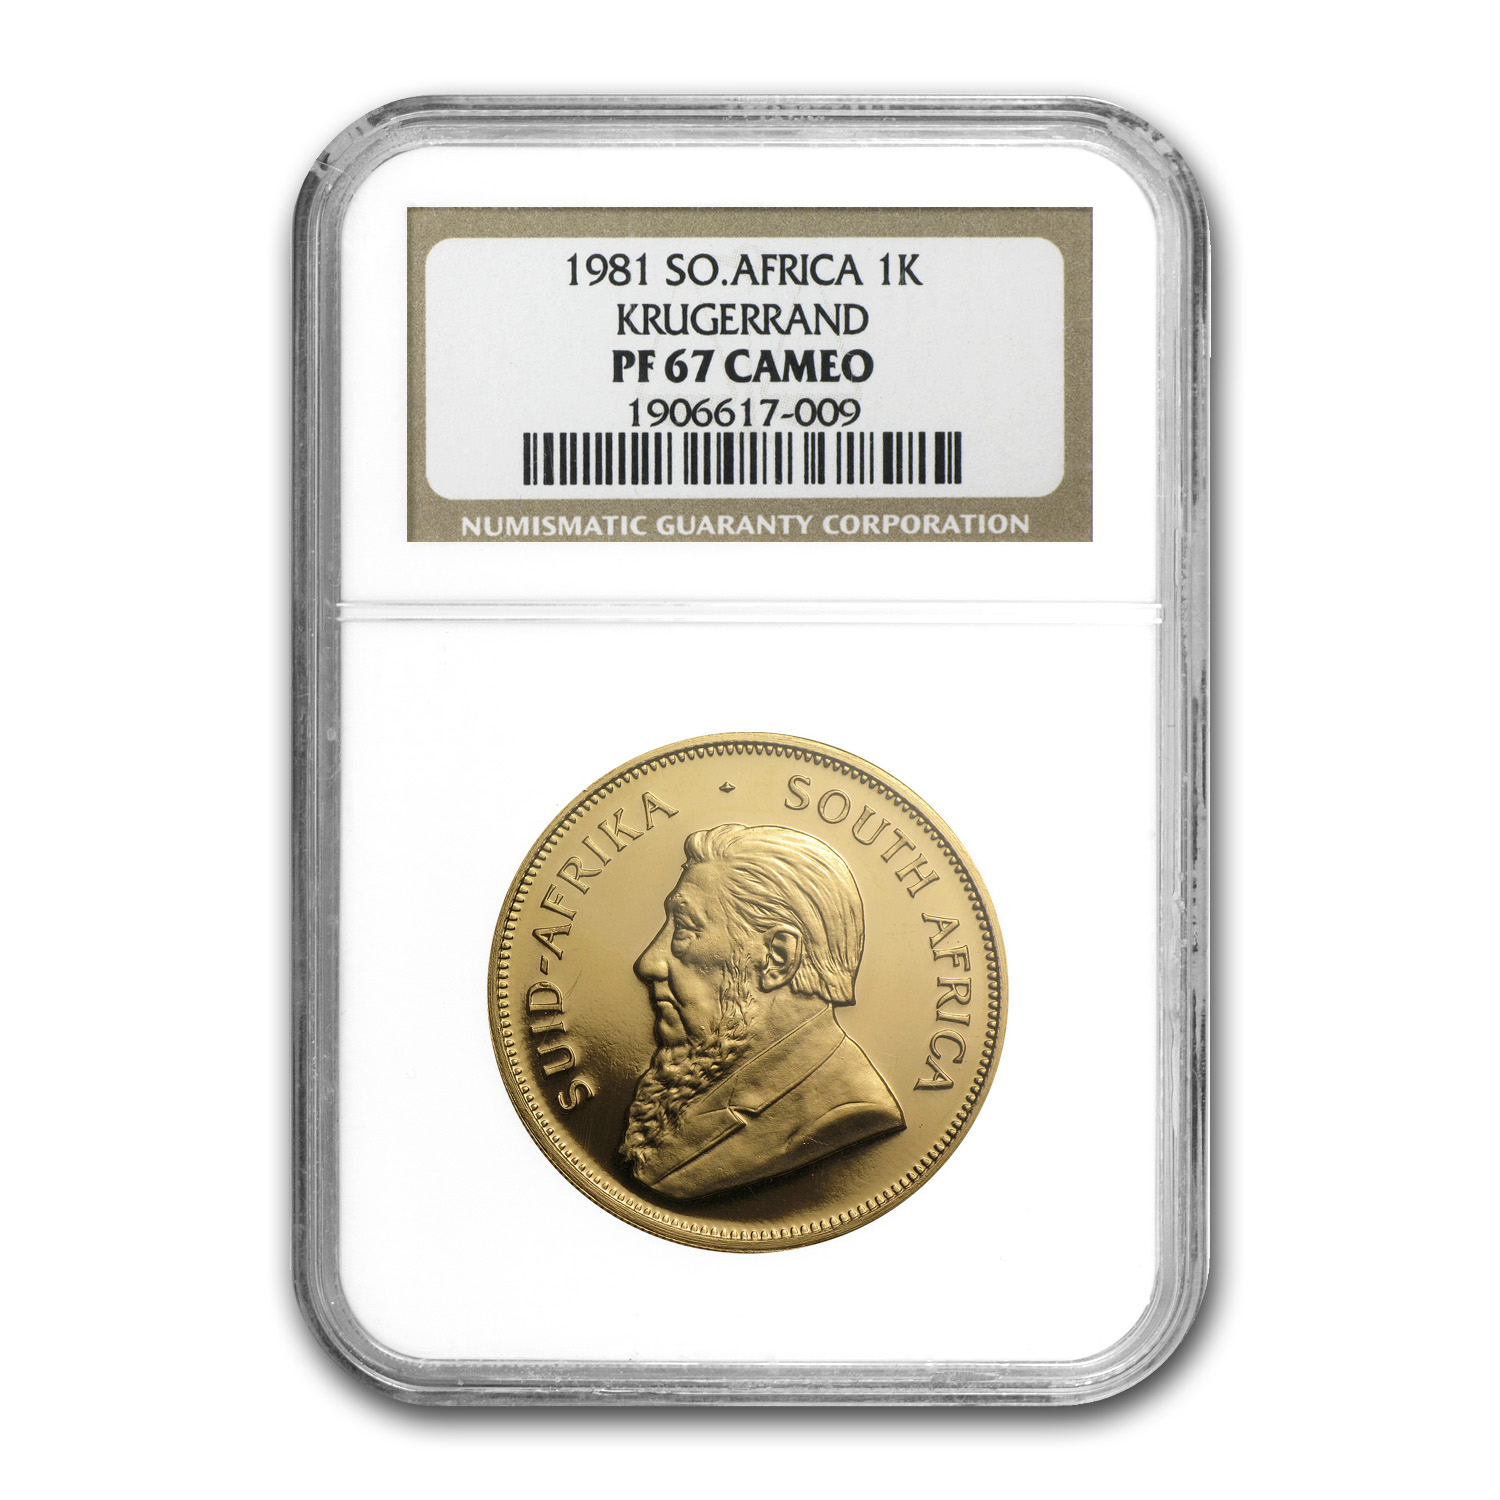 1981 South Africa 1 oz Gold Krugerrand PF-67 Cameo NGC